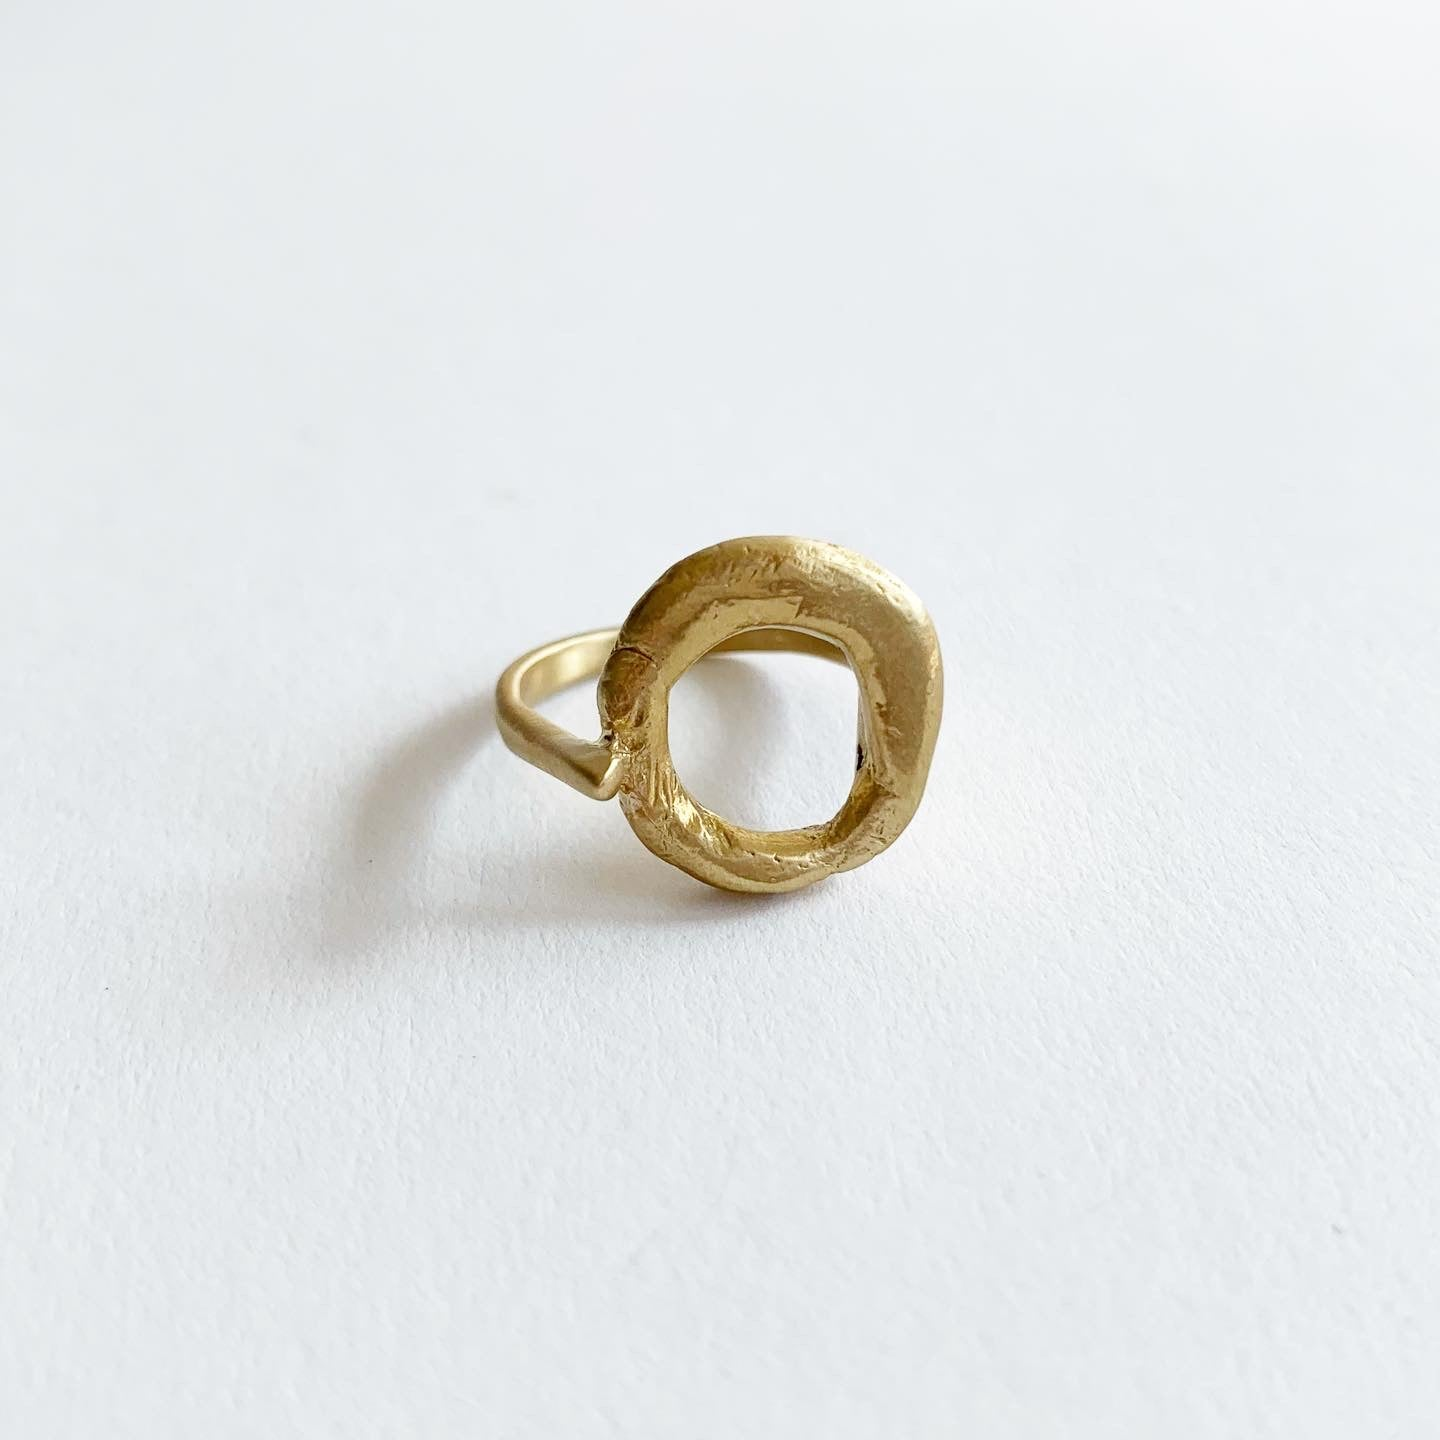 8.6.4. Designs Brass Prong Ring